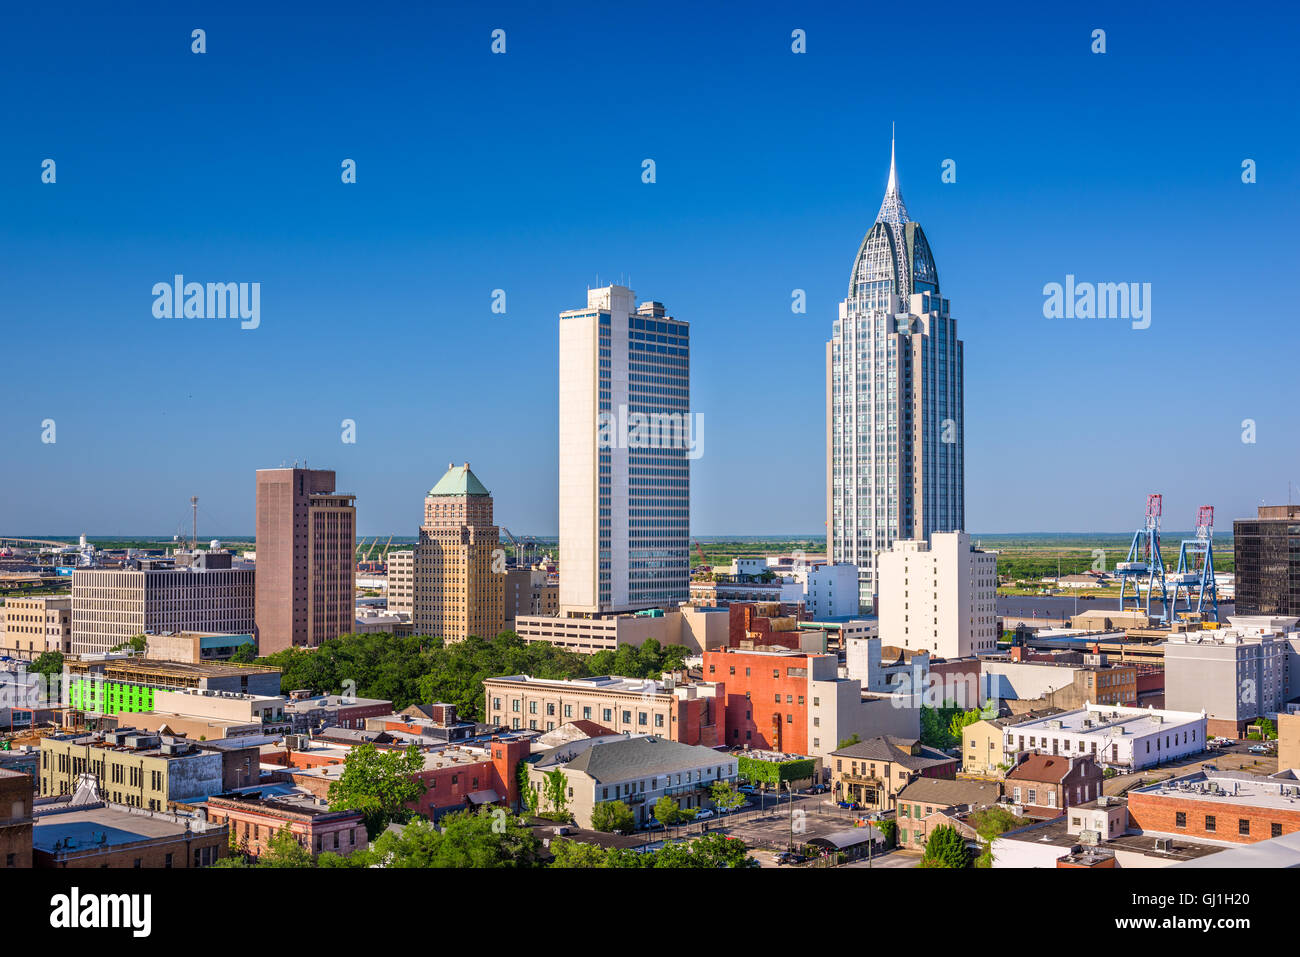 Mobile, Alabama, USA downtown skyline. - Stock Image